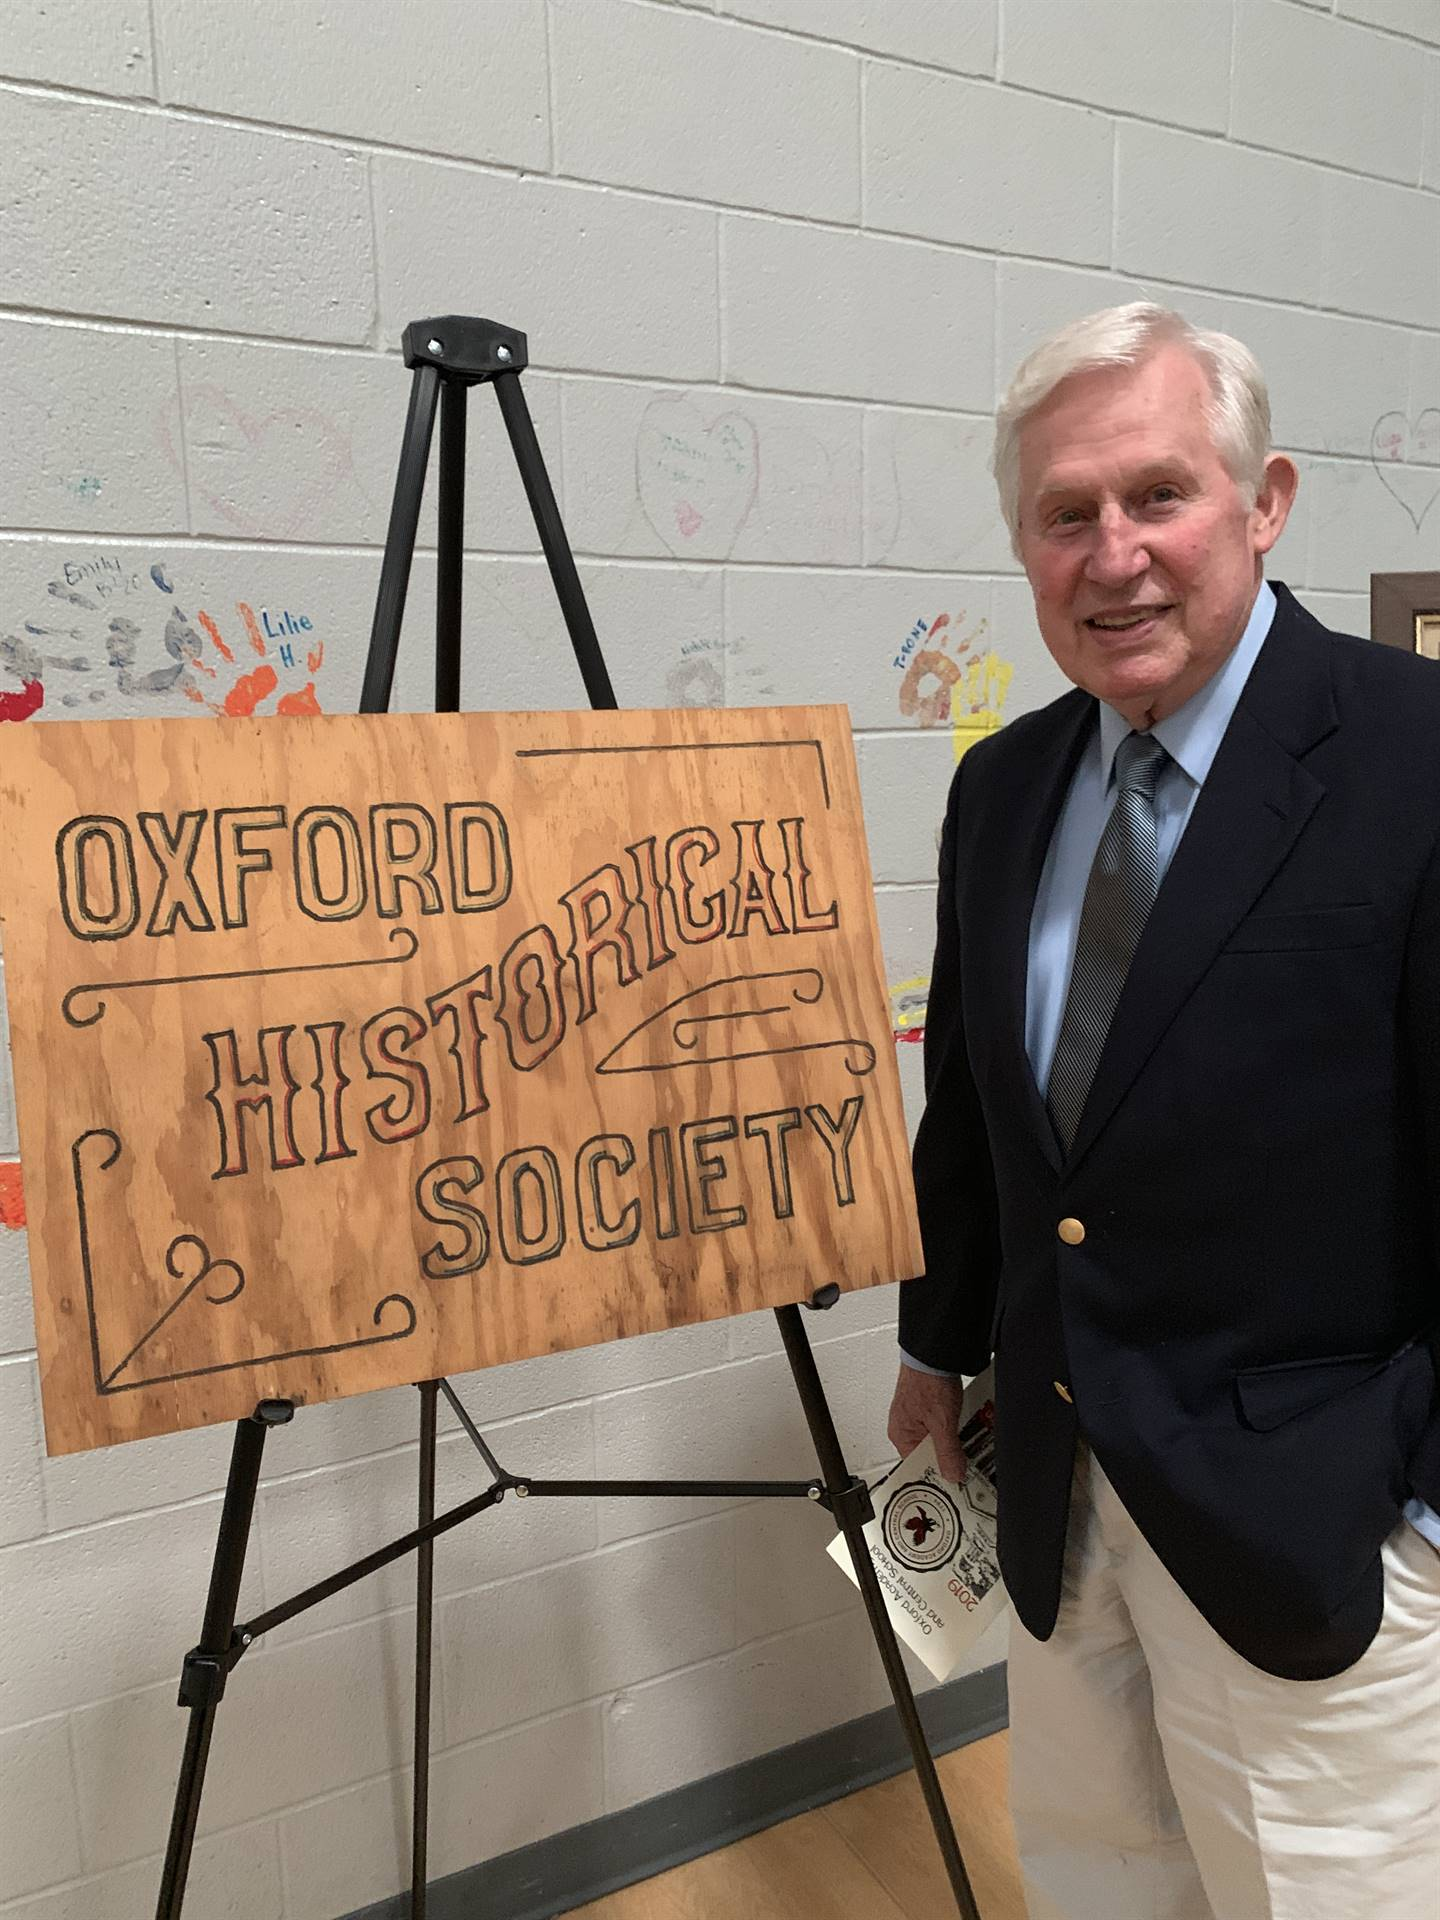 Mr. Lanfear posing with historical society sign display